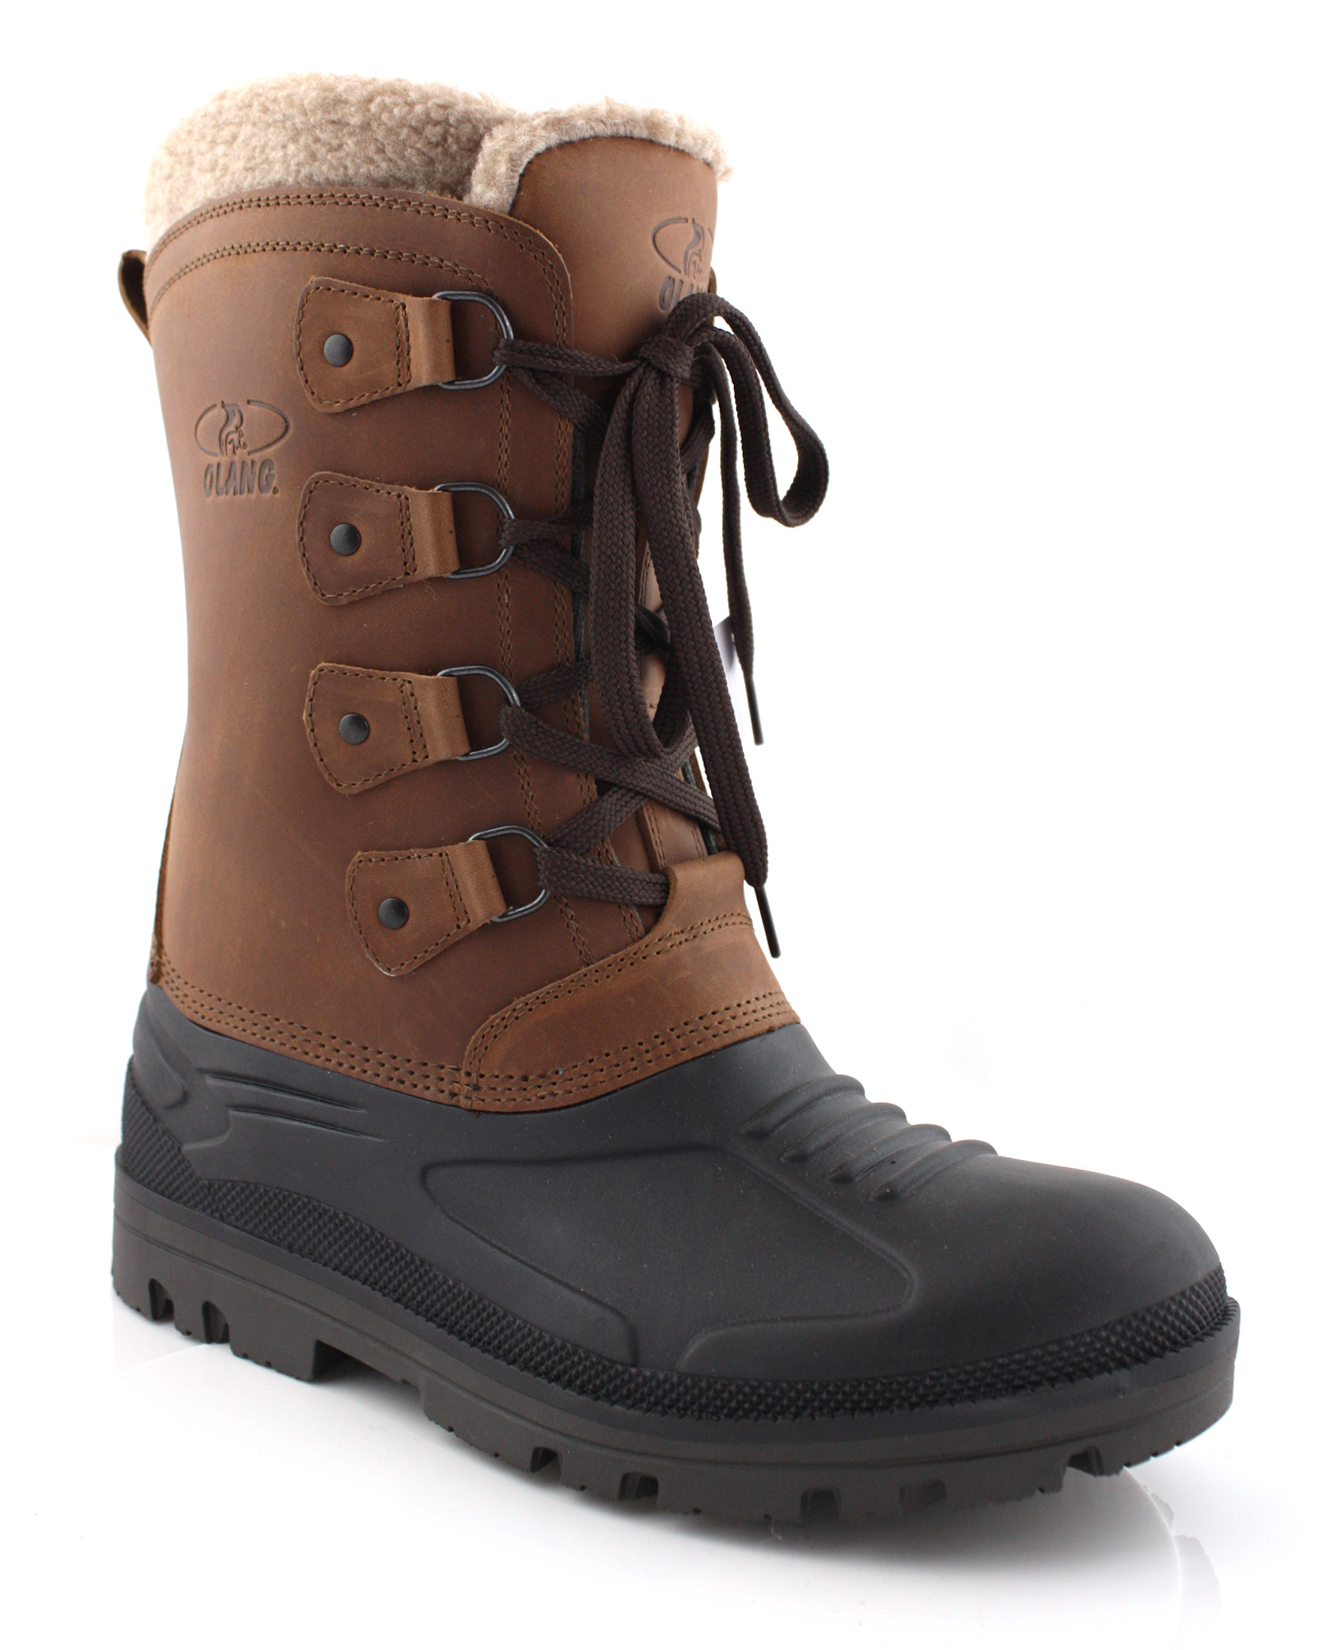 olang explorer cuoio order now at snowboots shop co uk